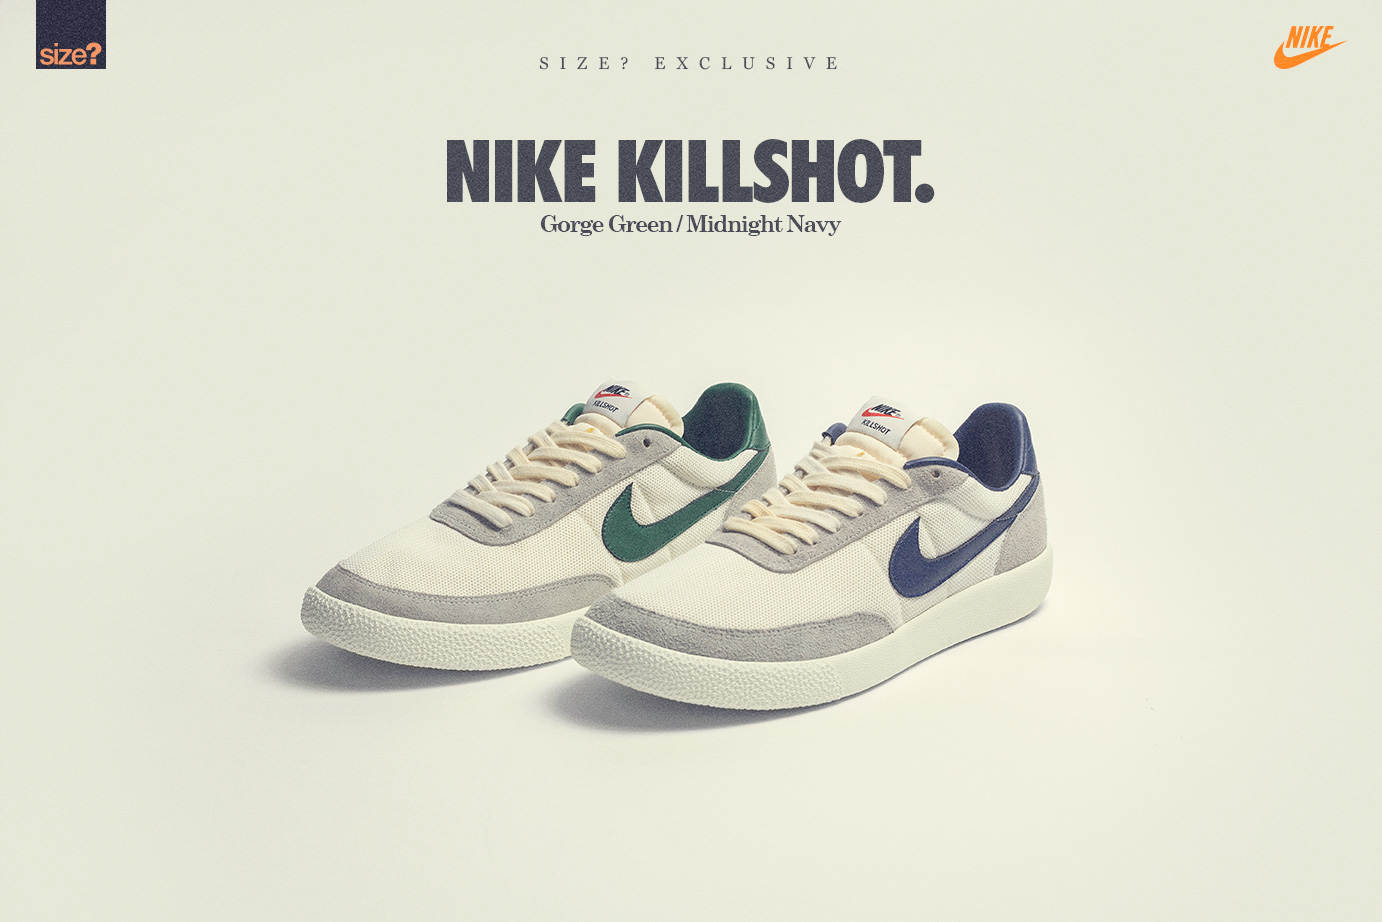 finest selection 2d524 a9a52 Size  continues to surprise with its Nike silhouette selections, the  Killshot is the latest.